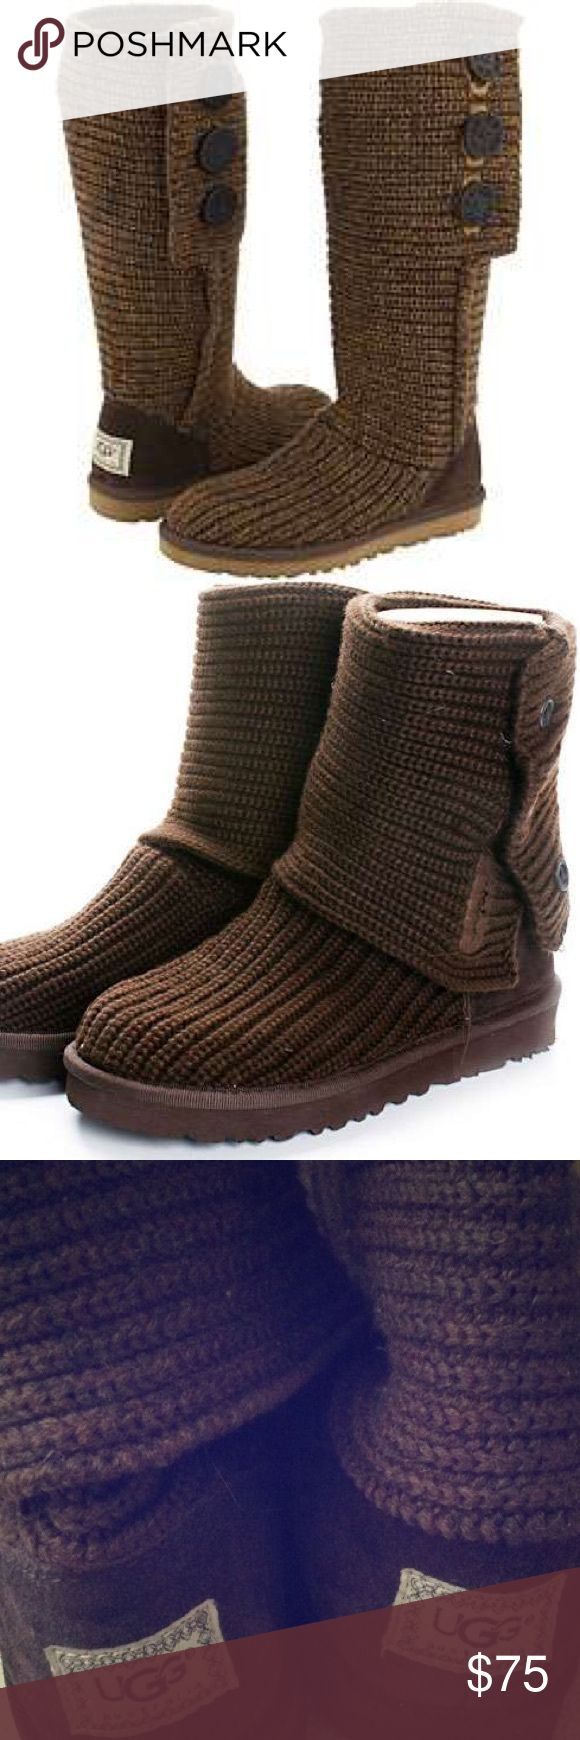 """Ugg Cardy🍂HOST PICK 11/22🍁FALL FAVORITES🍂 Authentic Classic Cardy Ugg® comfort you will love. It's functional buttons you can style them 3 diff. ways: All the way up, unbuttoned,and cuffed, or slouched down. This favorite boot provides cushioning, traction & durability. Will fit 7 or 8 they have tons of streatch Material: 50% Wool, 50% Acrylic, Wood Buttons, wool insole, Treadlite by UGG™ outsole, 14 1/2"""" Shaft ✨Great Condition, hardly worn, only flaw is nicks on buttons shown price…"""